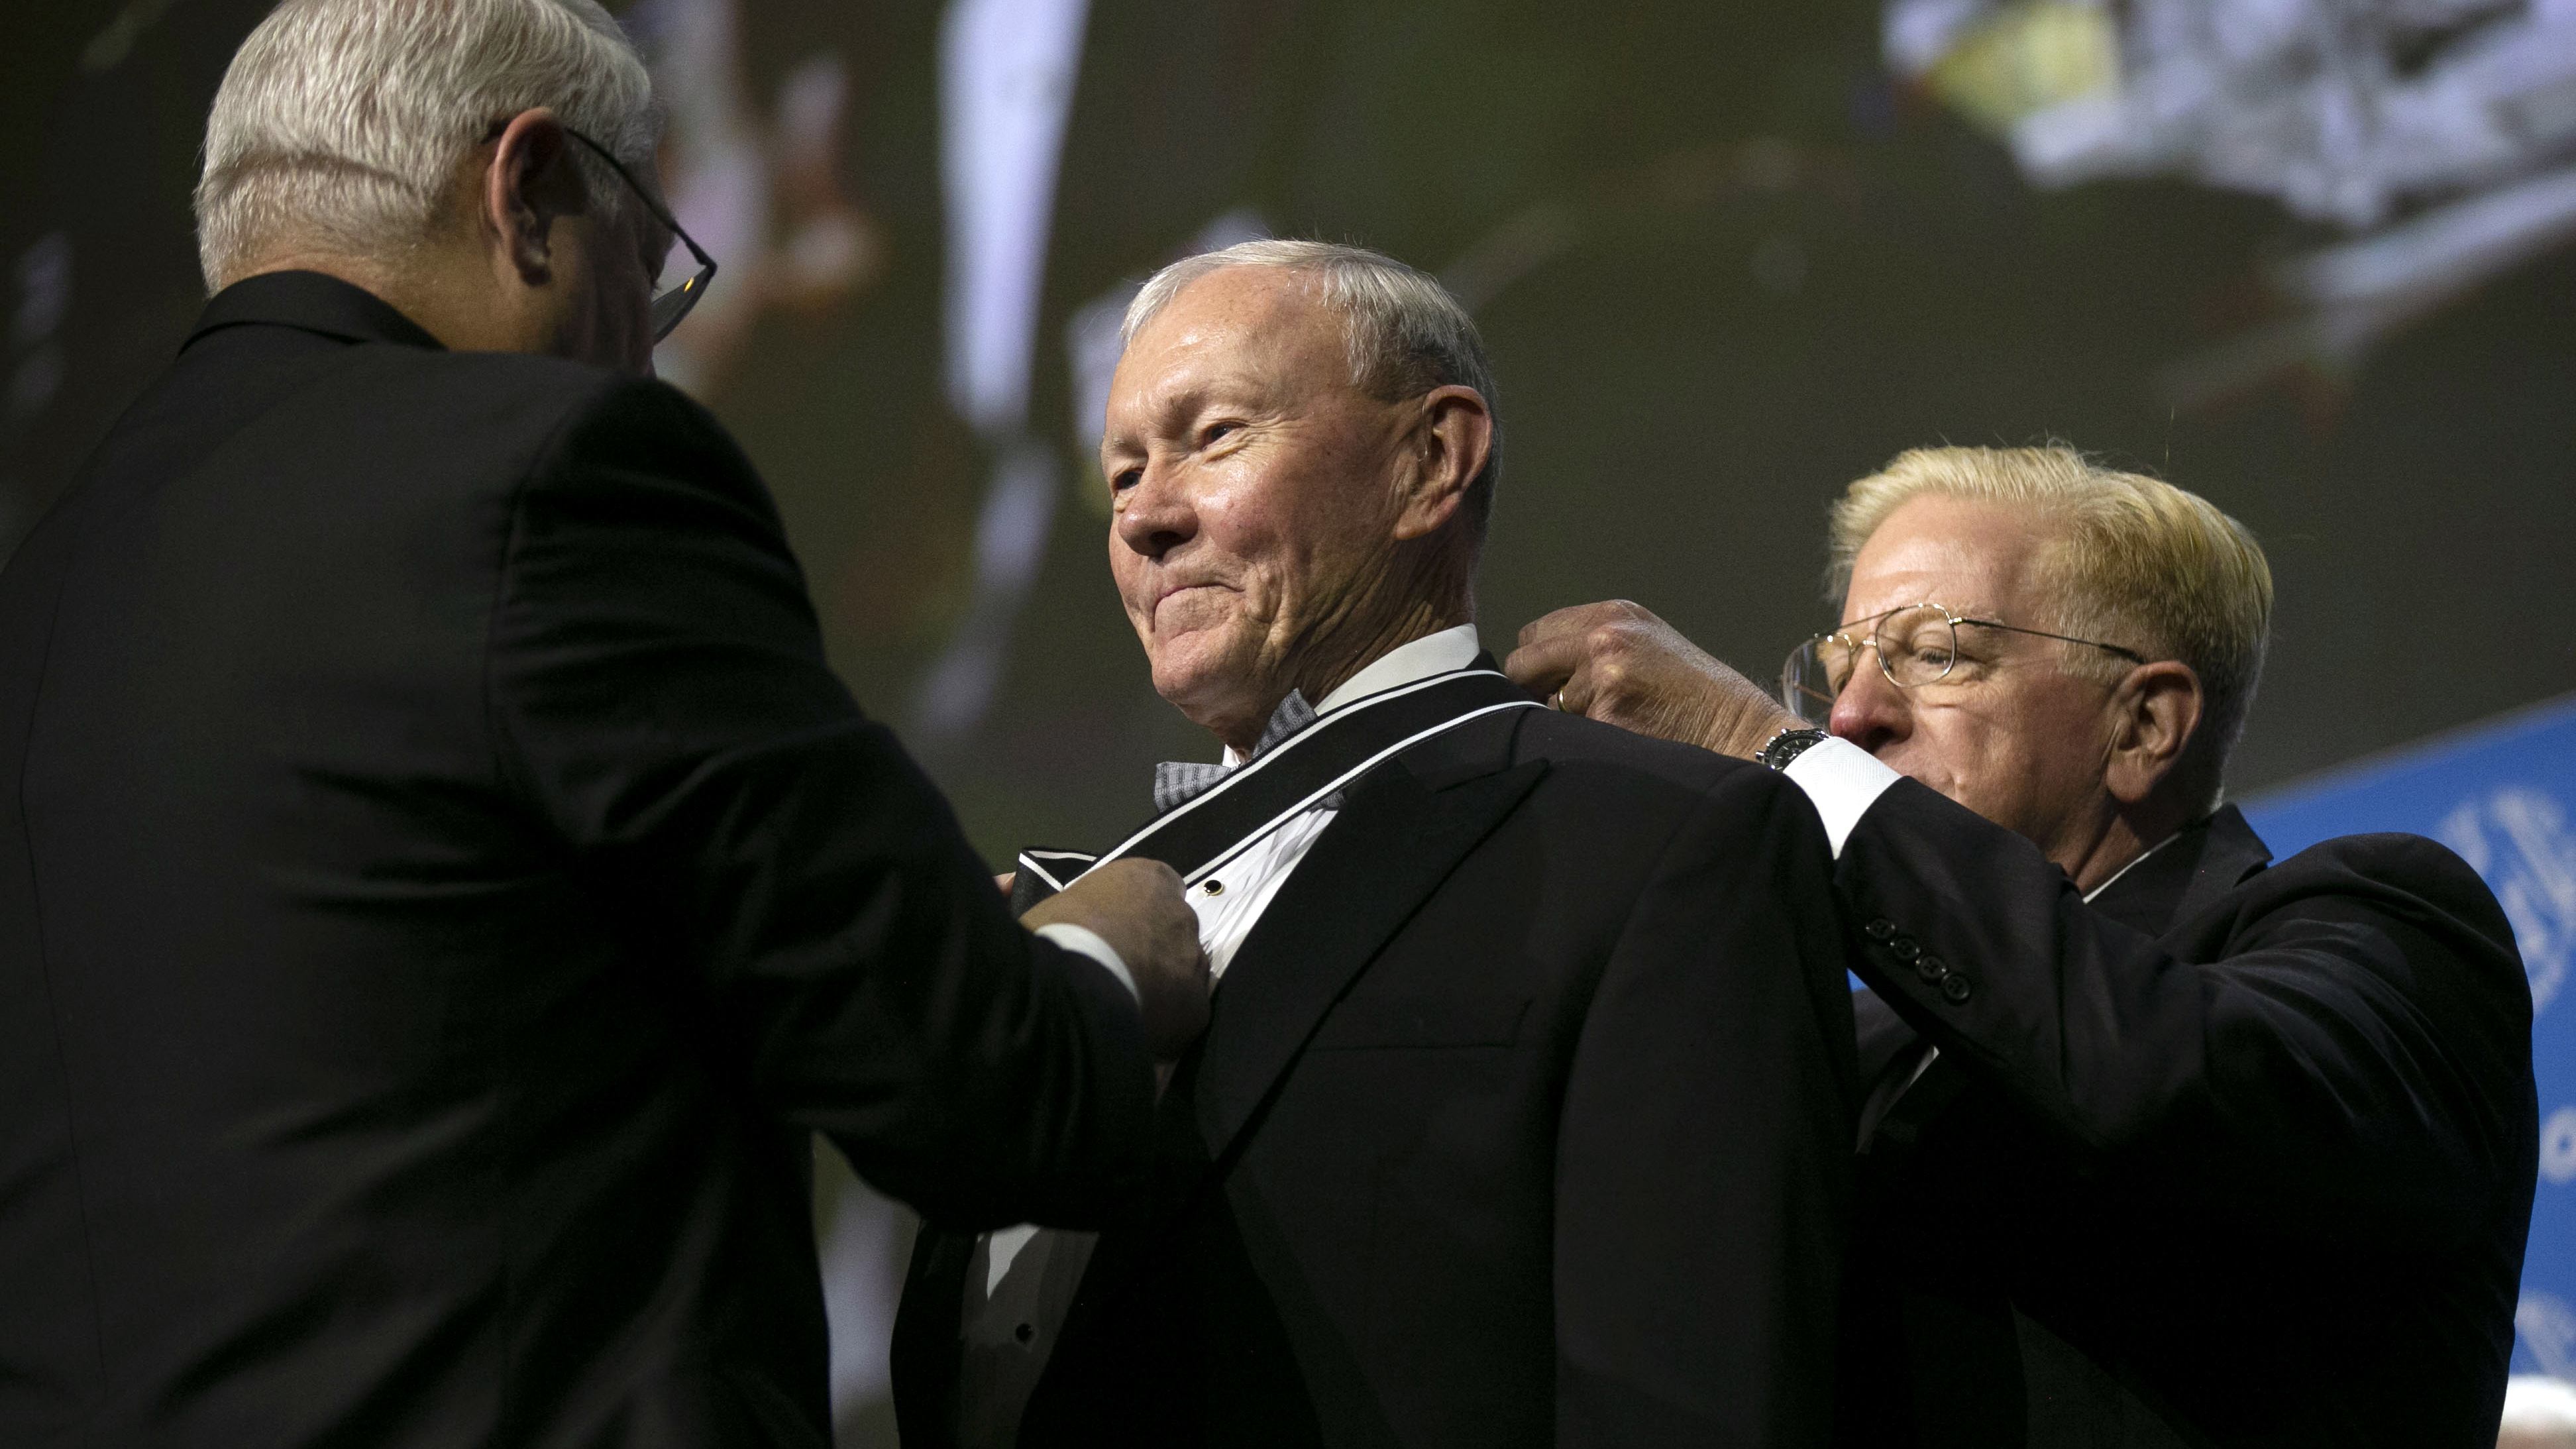 Gen. Martin Dempsey is presented with the George Catlett Marshall Medal by AUSA President Gen. Carter Ham, left, and AUSA Trustee Rudy de Leon during closing ceremonies at the 2019 AUSA Annual Meeting and Exposition at the Washington Convention Center on